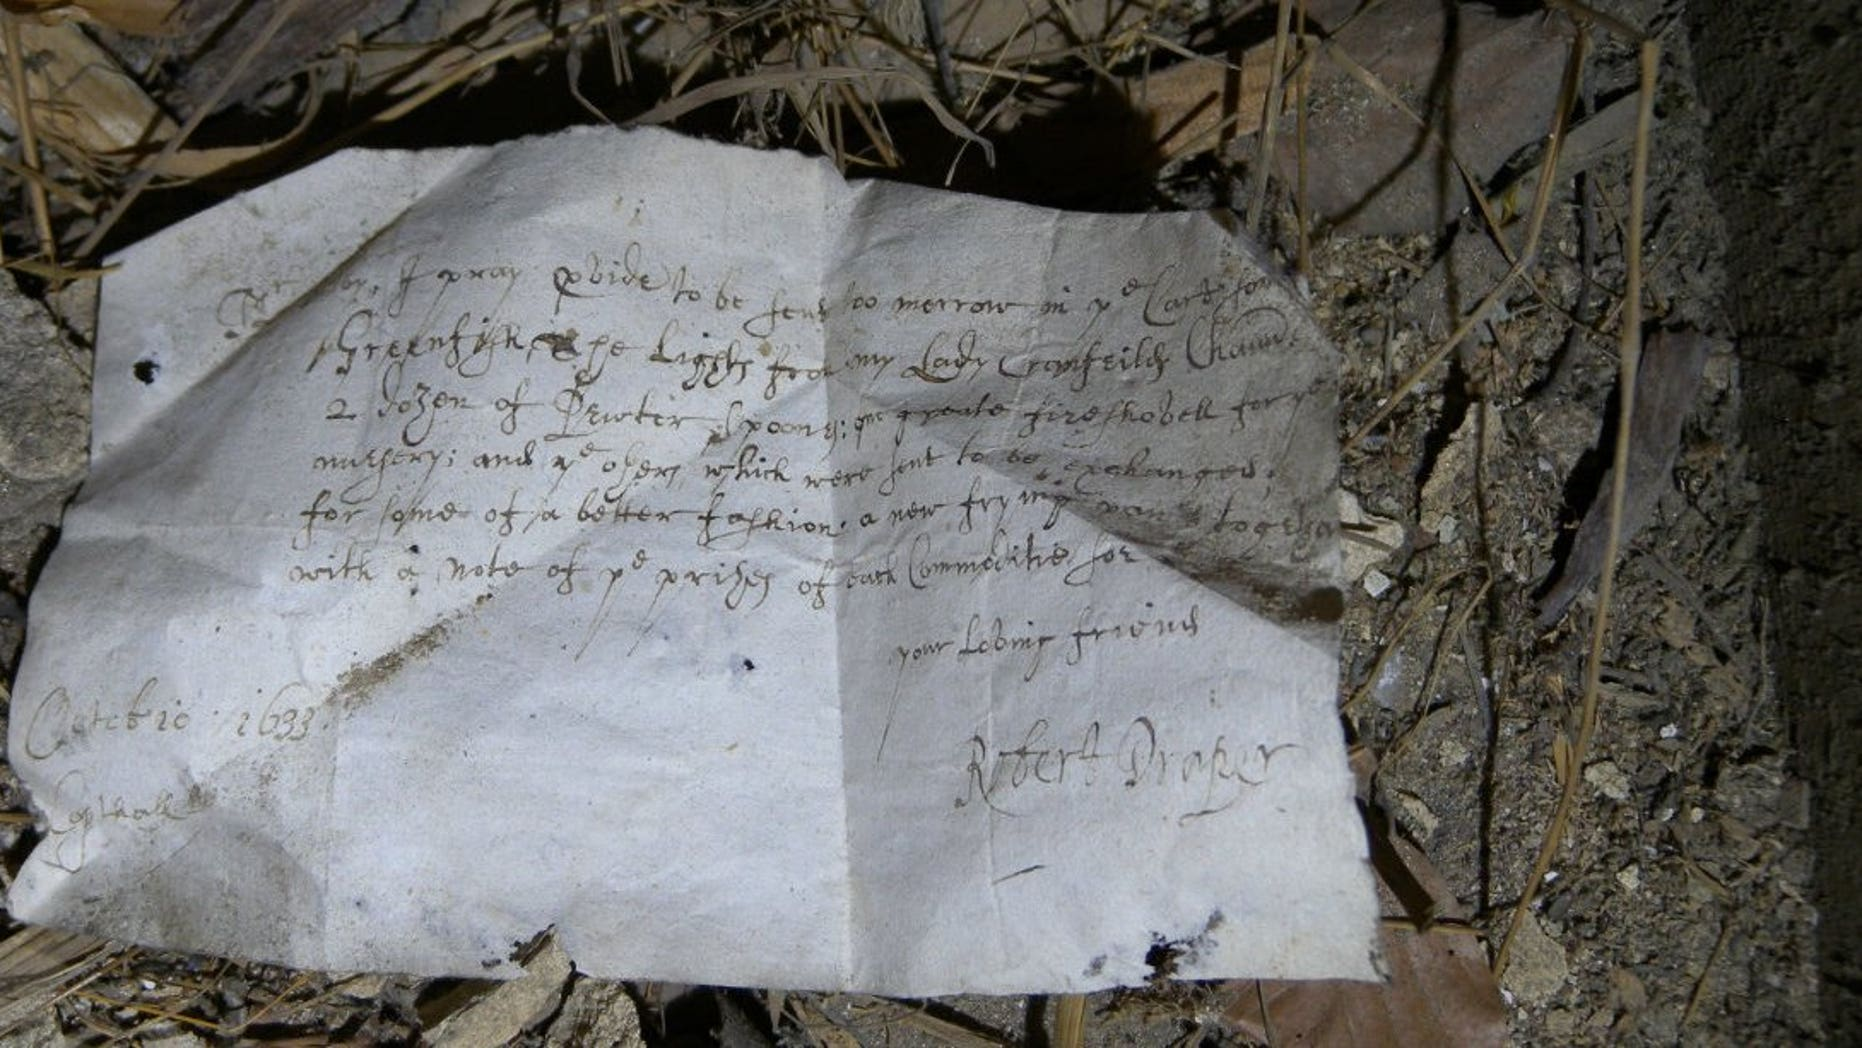 1633 letter in the South Barracks, Knole House (National Trust).